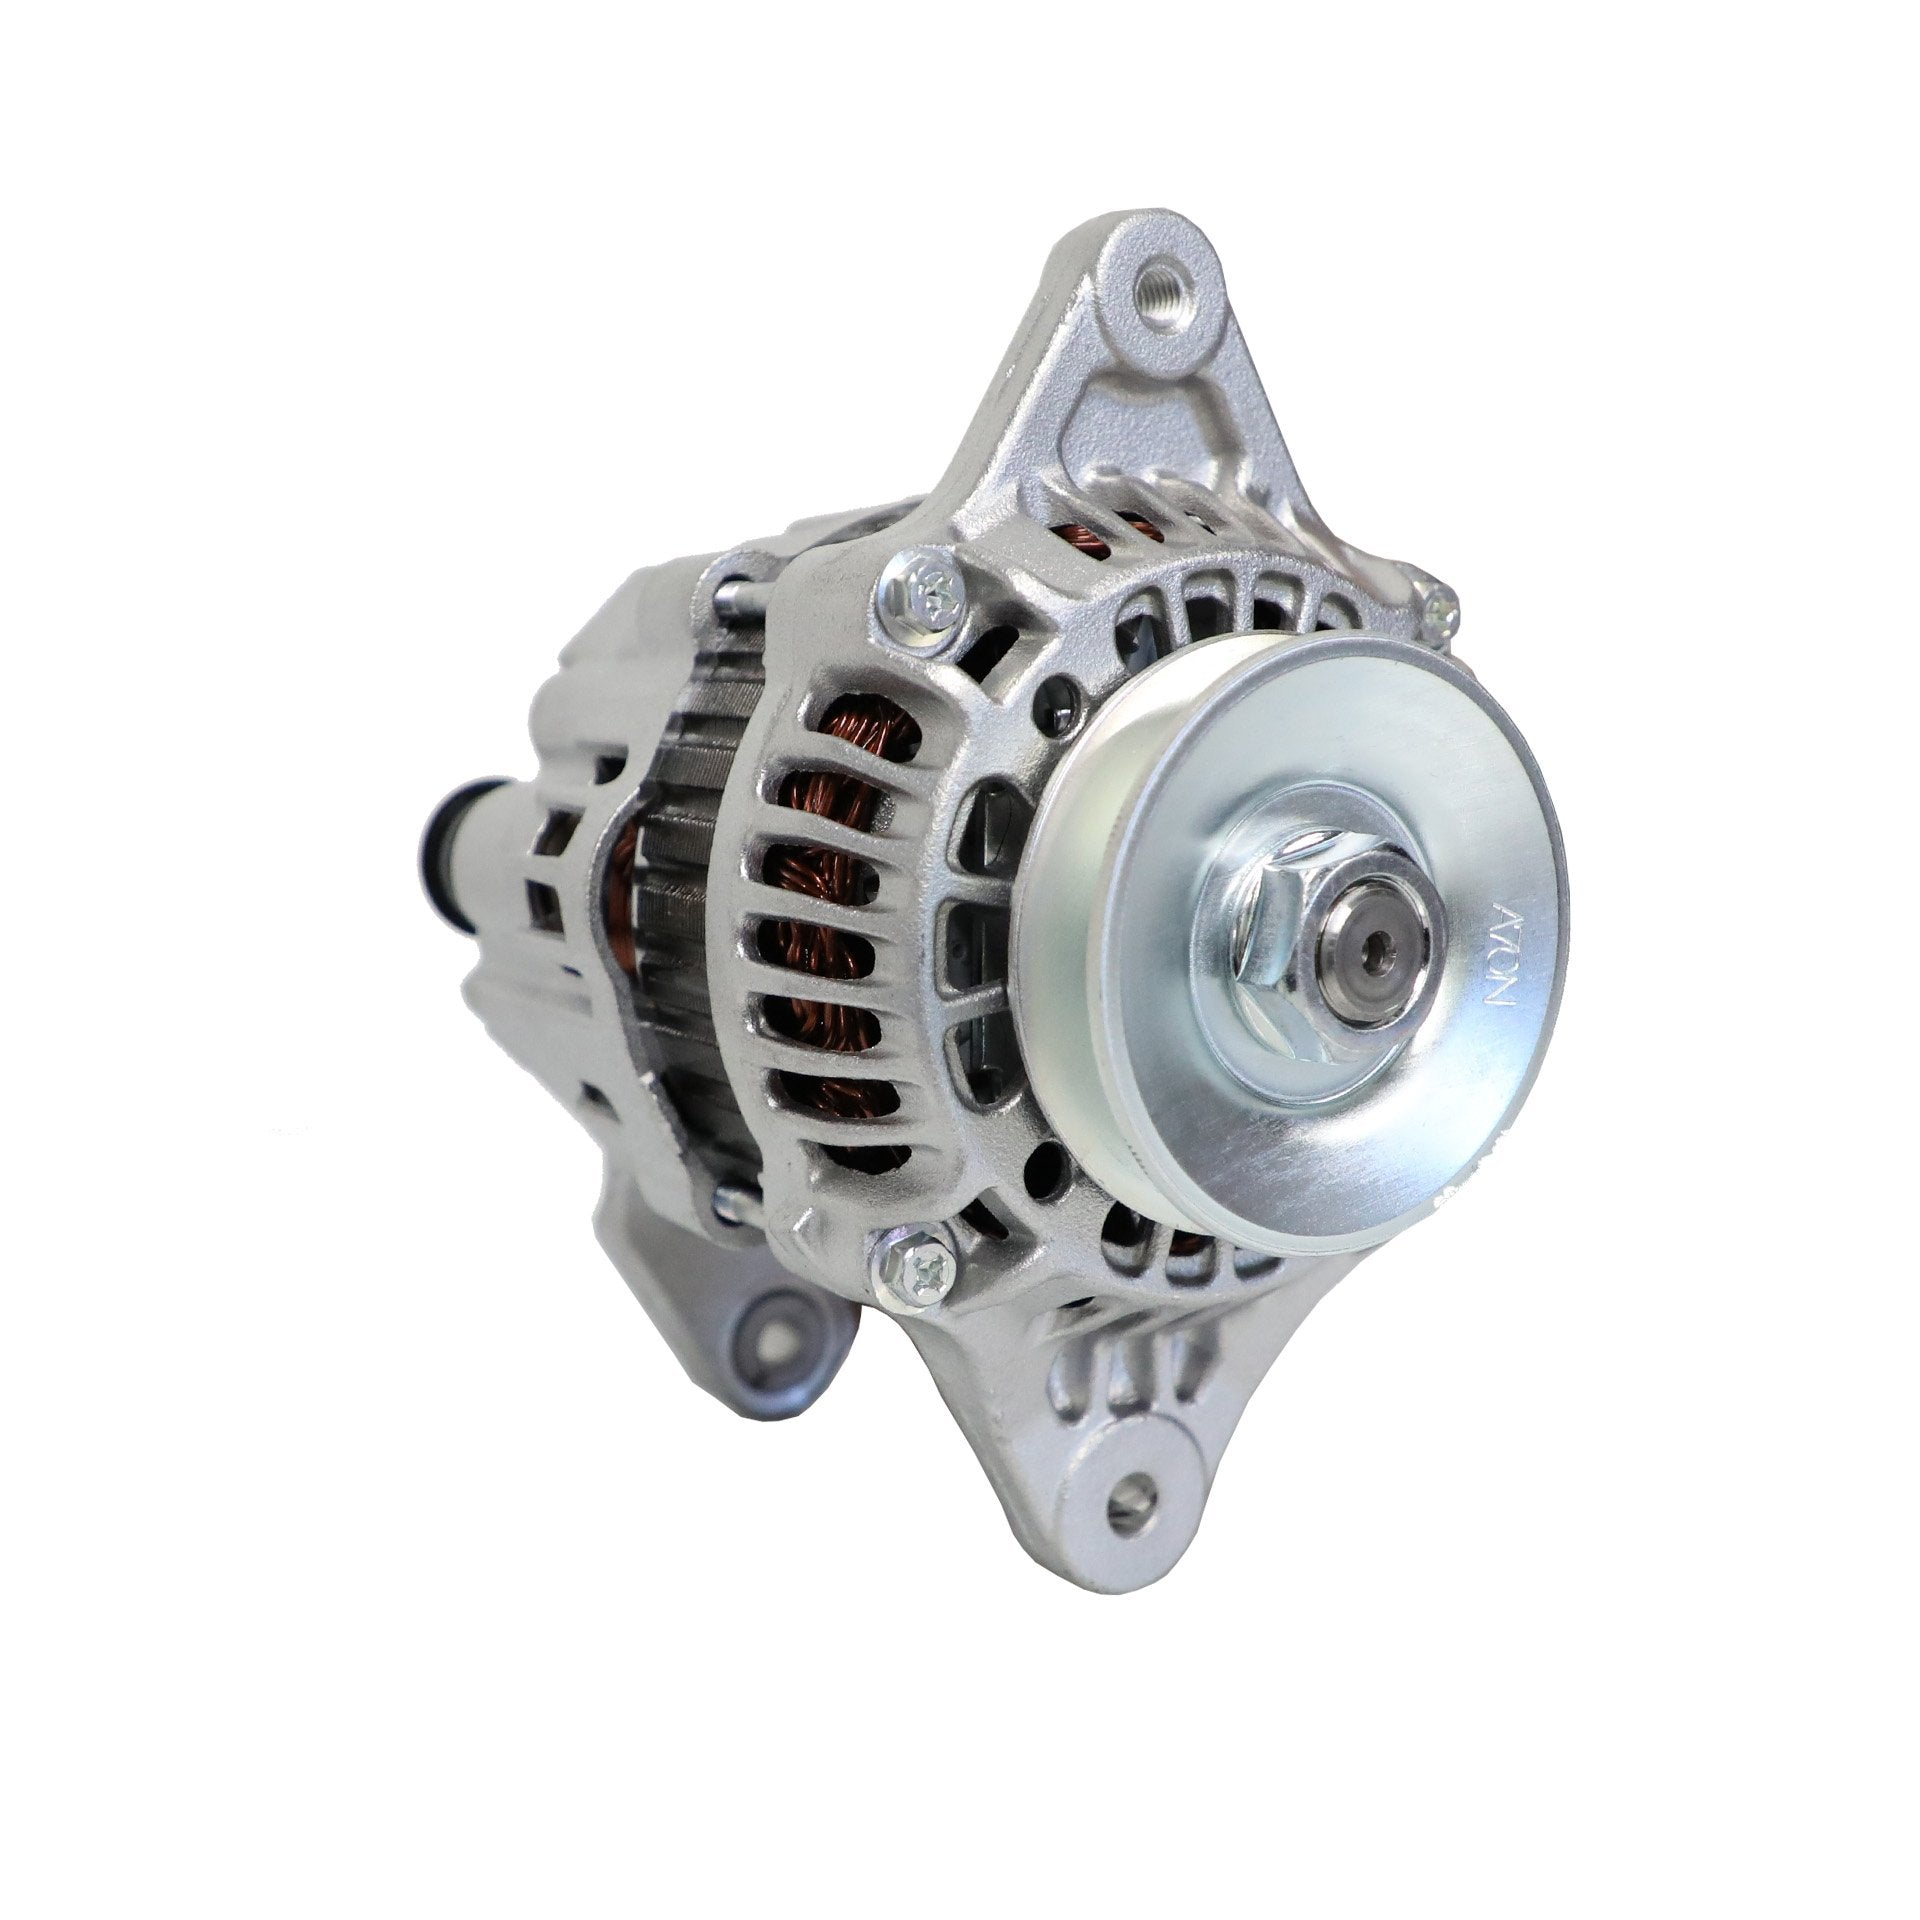 UPDATE 50 Amps Alternator SKU: 2G301-6NF01